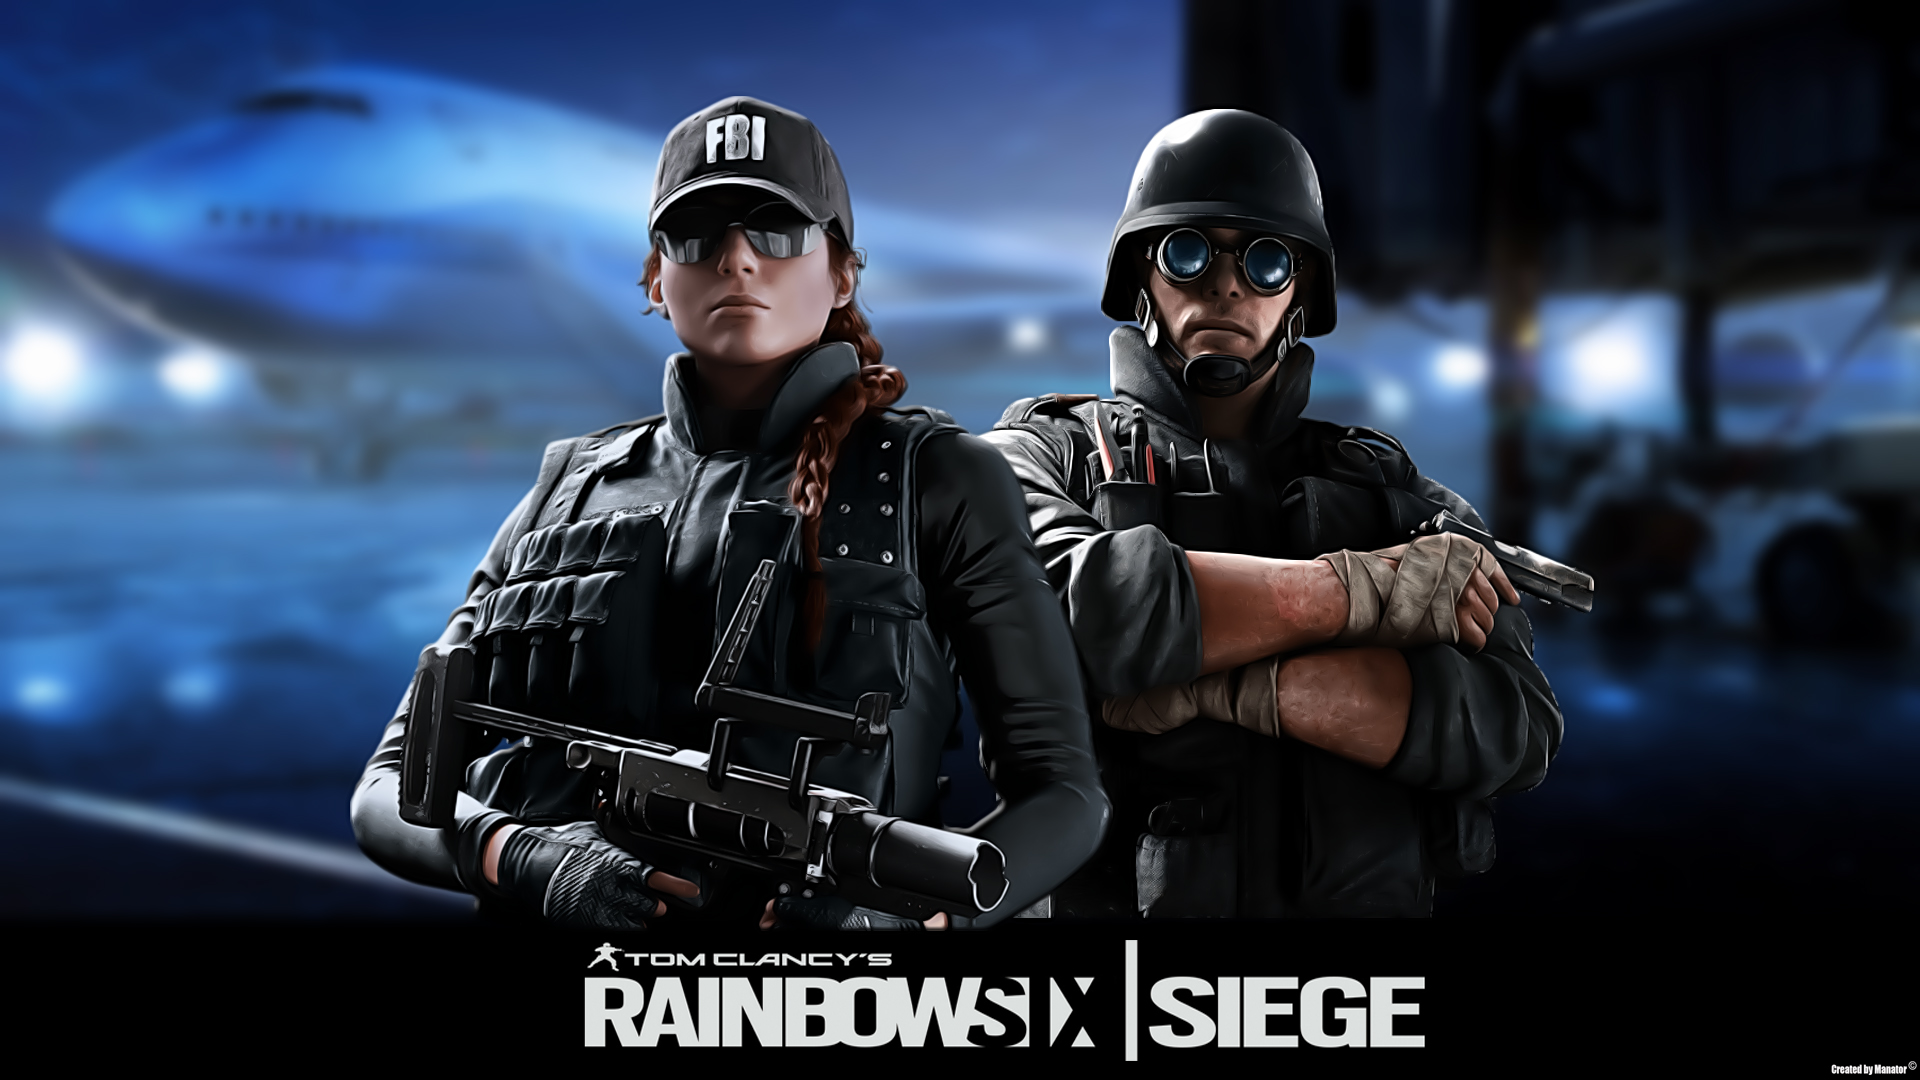 Rainbow Six Siege Wallpaper Hd: Rainbow Six: Siege HD Wallpapers Free Download